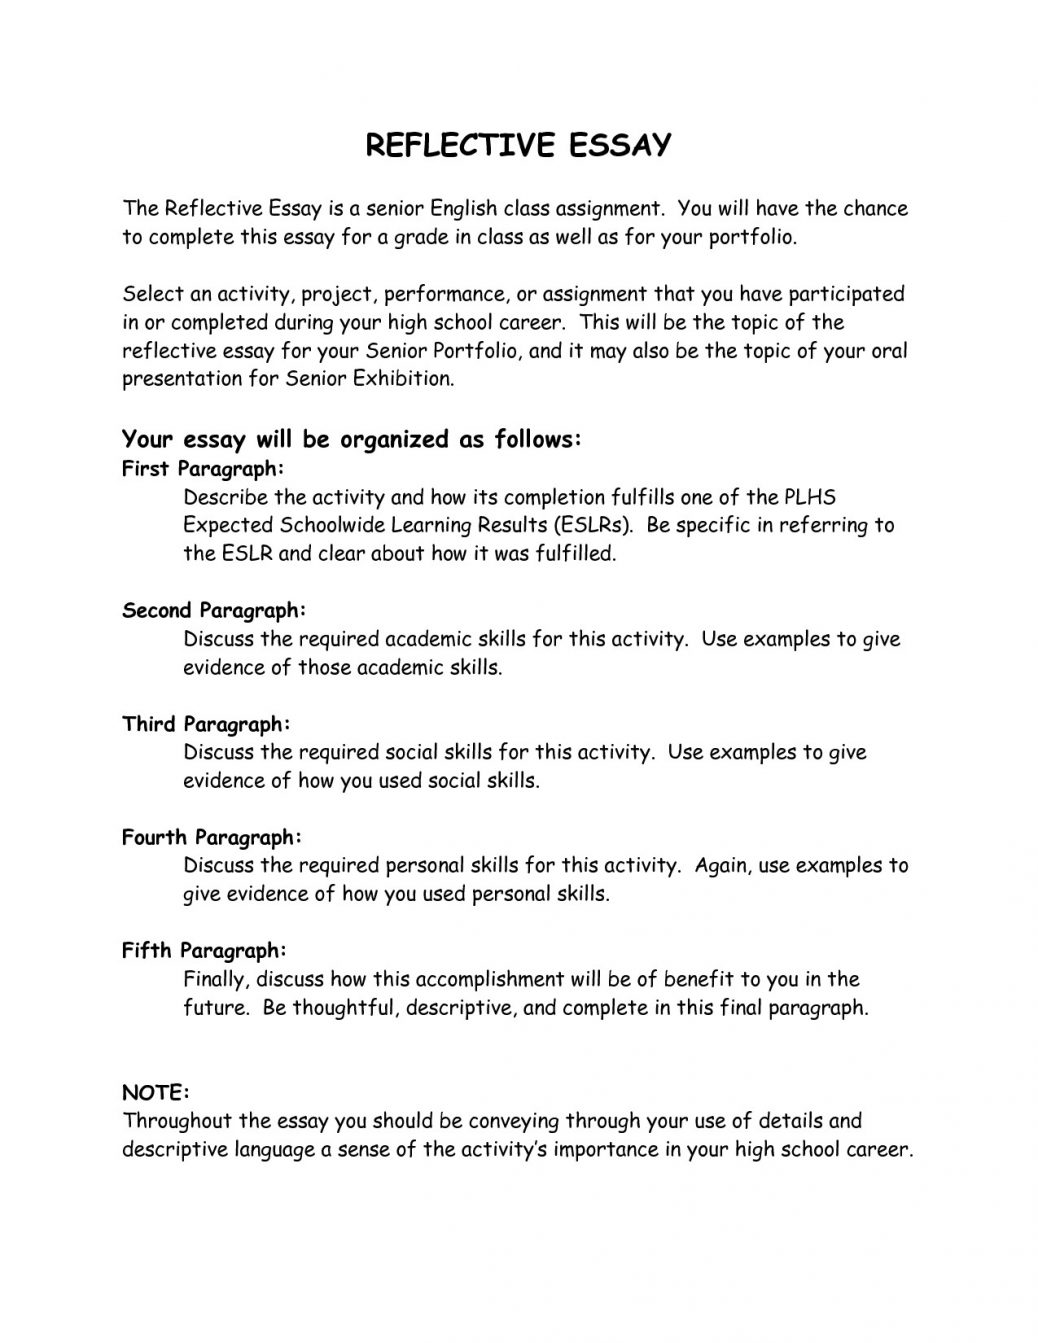 022 Paragraph Development Examples Essay Template Staggering Image Ideas Developing Thesis High School Researchr Writing Service Awesome 1038x1343 Cool Topics To Do On Impressive A Research Paper Interesting For Medical Of In Computer Science Economic